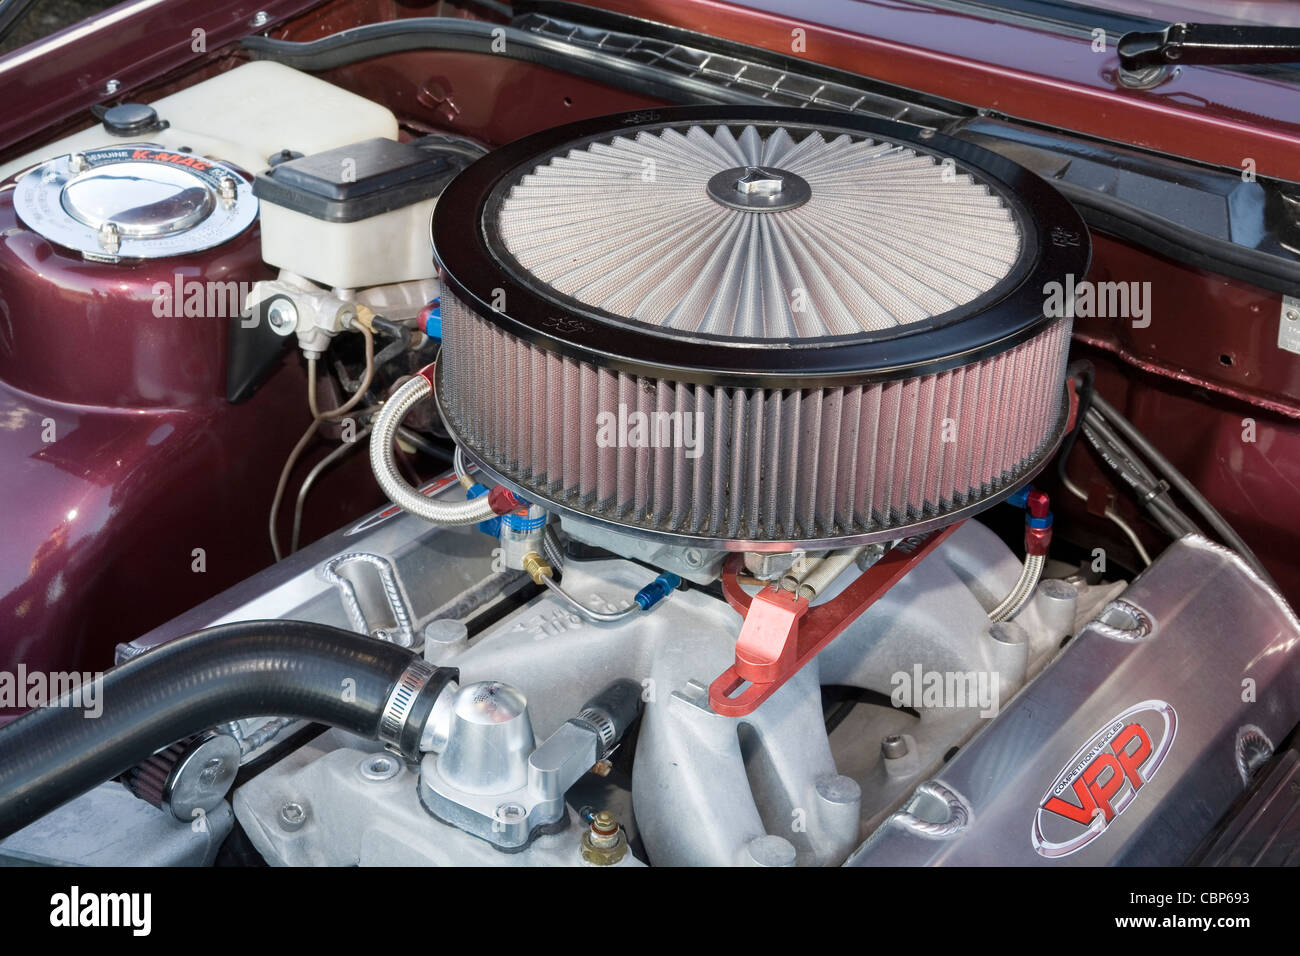 Custom Automotive Air Cleaners : Circular air filter cleaner in the engine bay of a